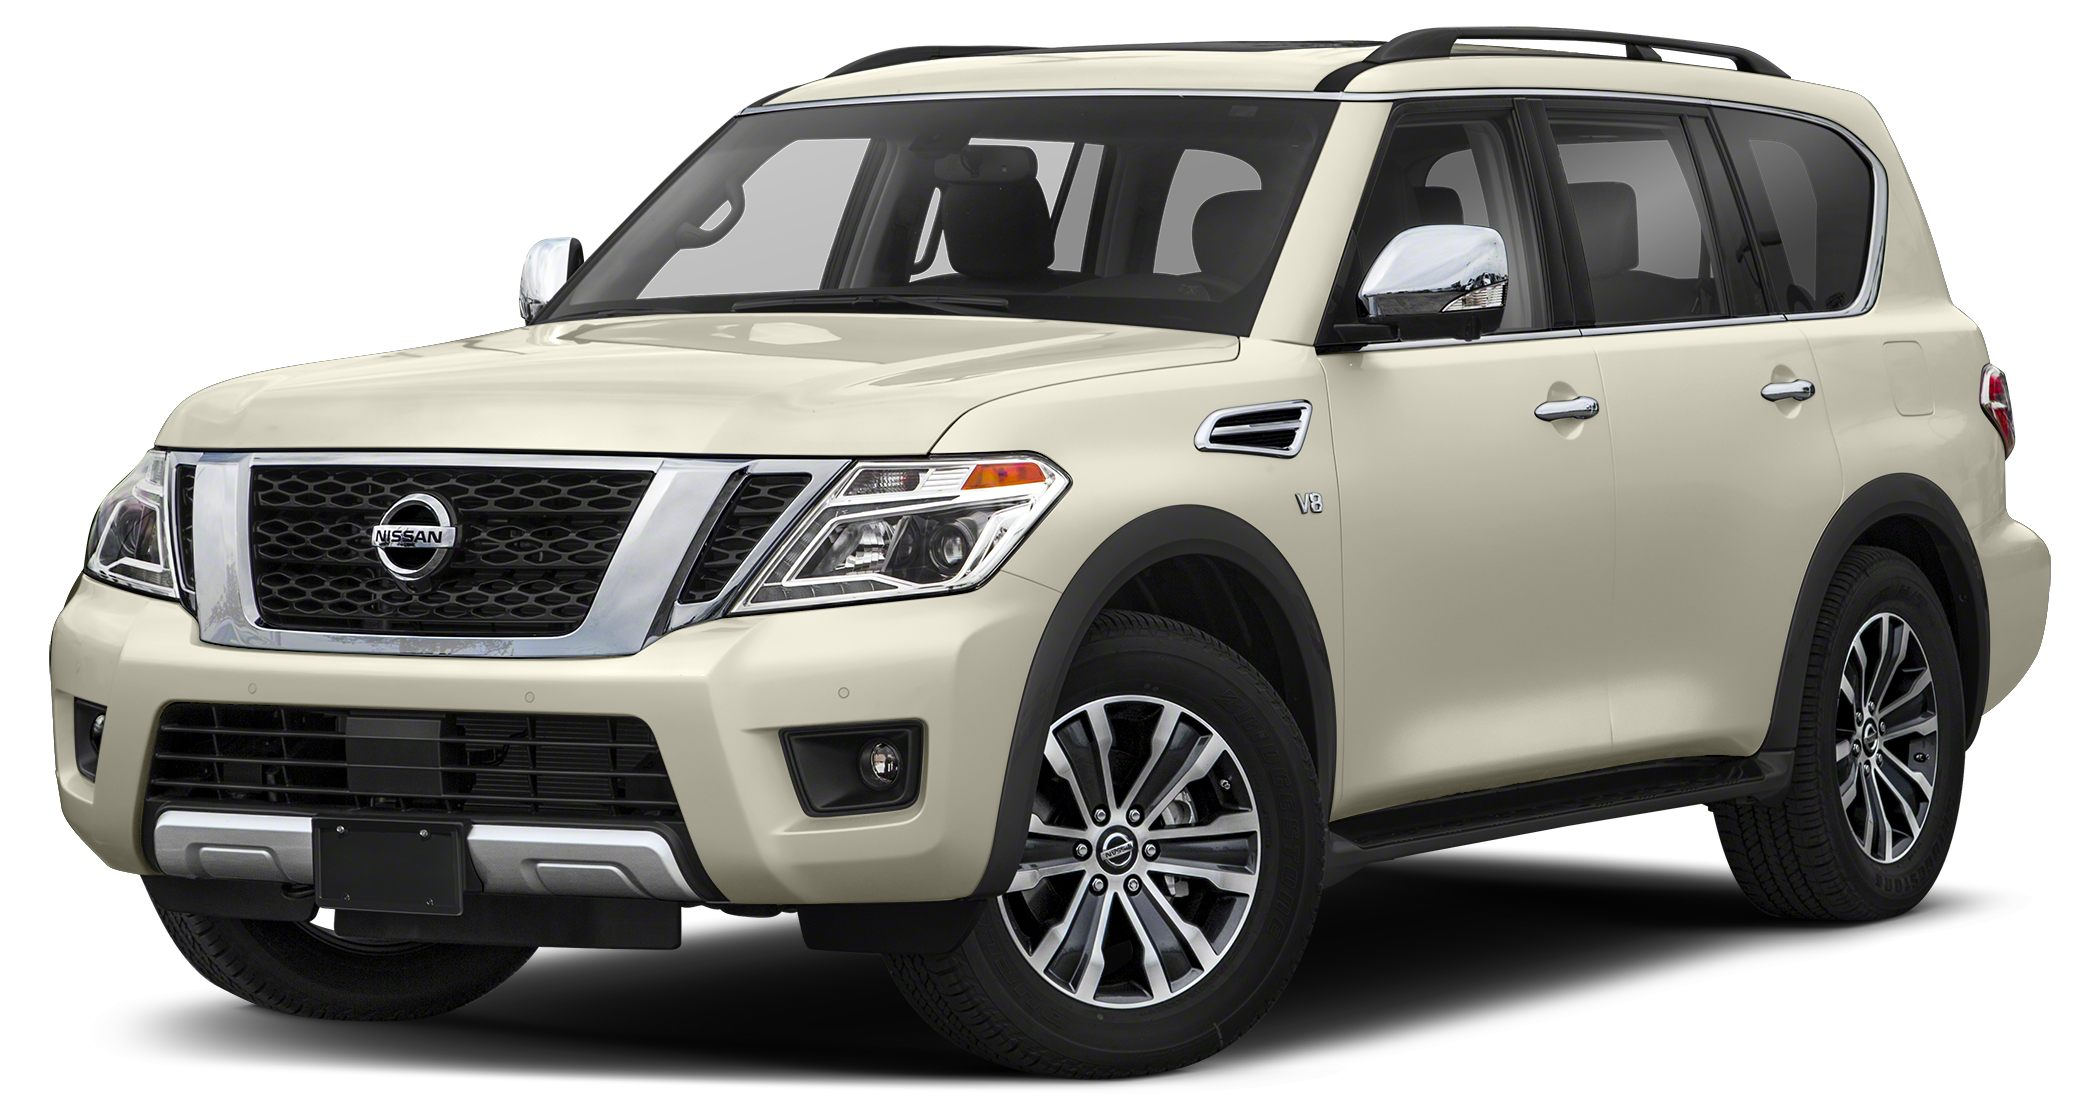 2017 Nissan Armada SL New Arrival This 2017 Nissan Armada SL will sell fast This Armada has many